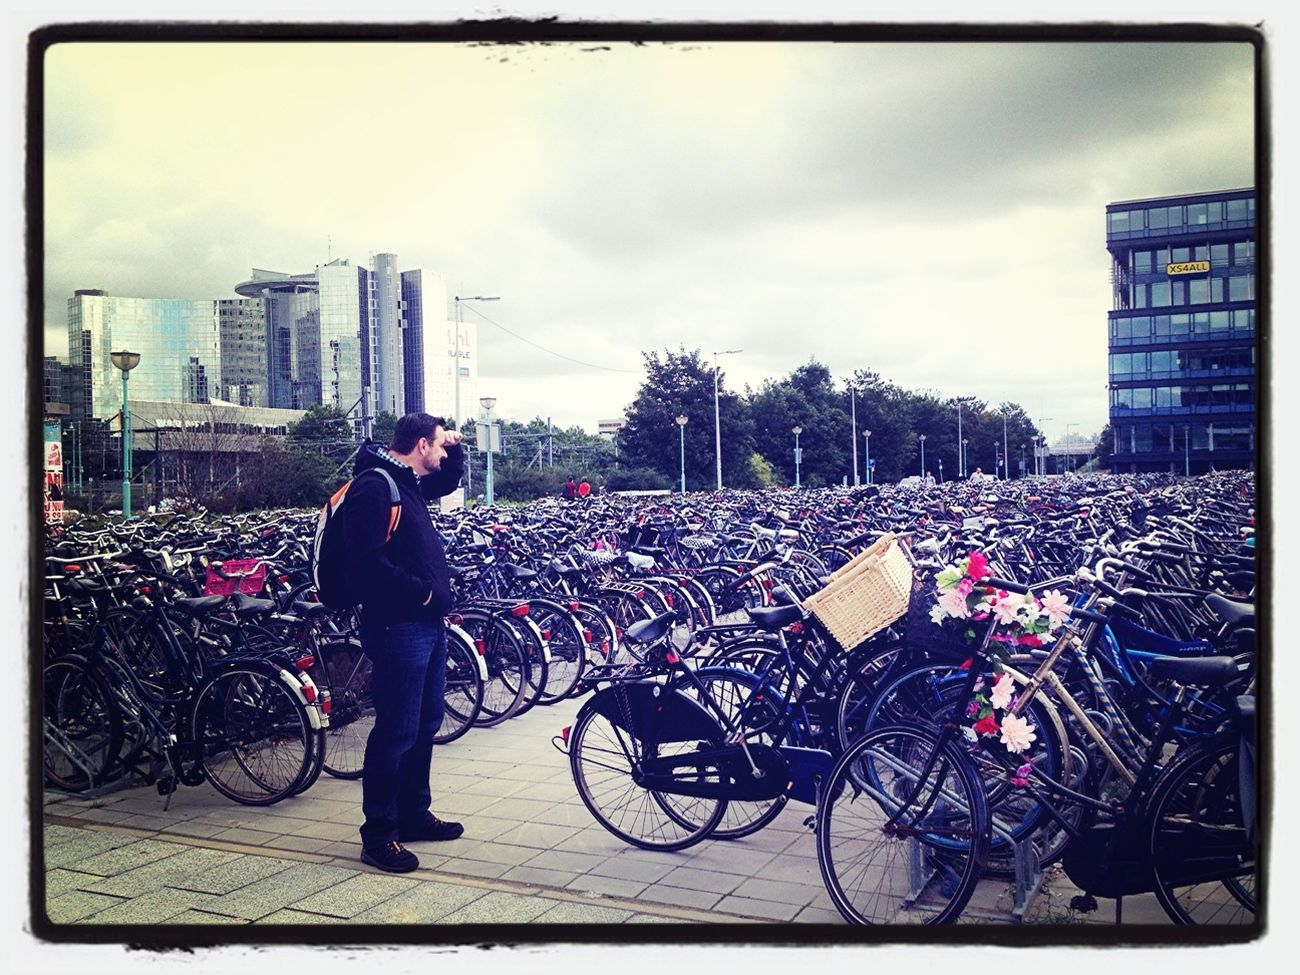 Searching My Bicycle